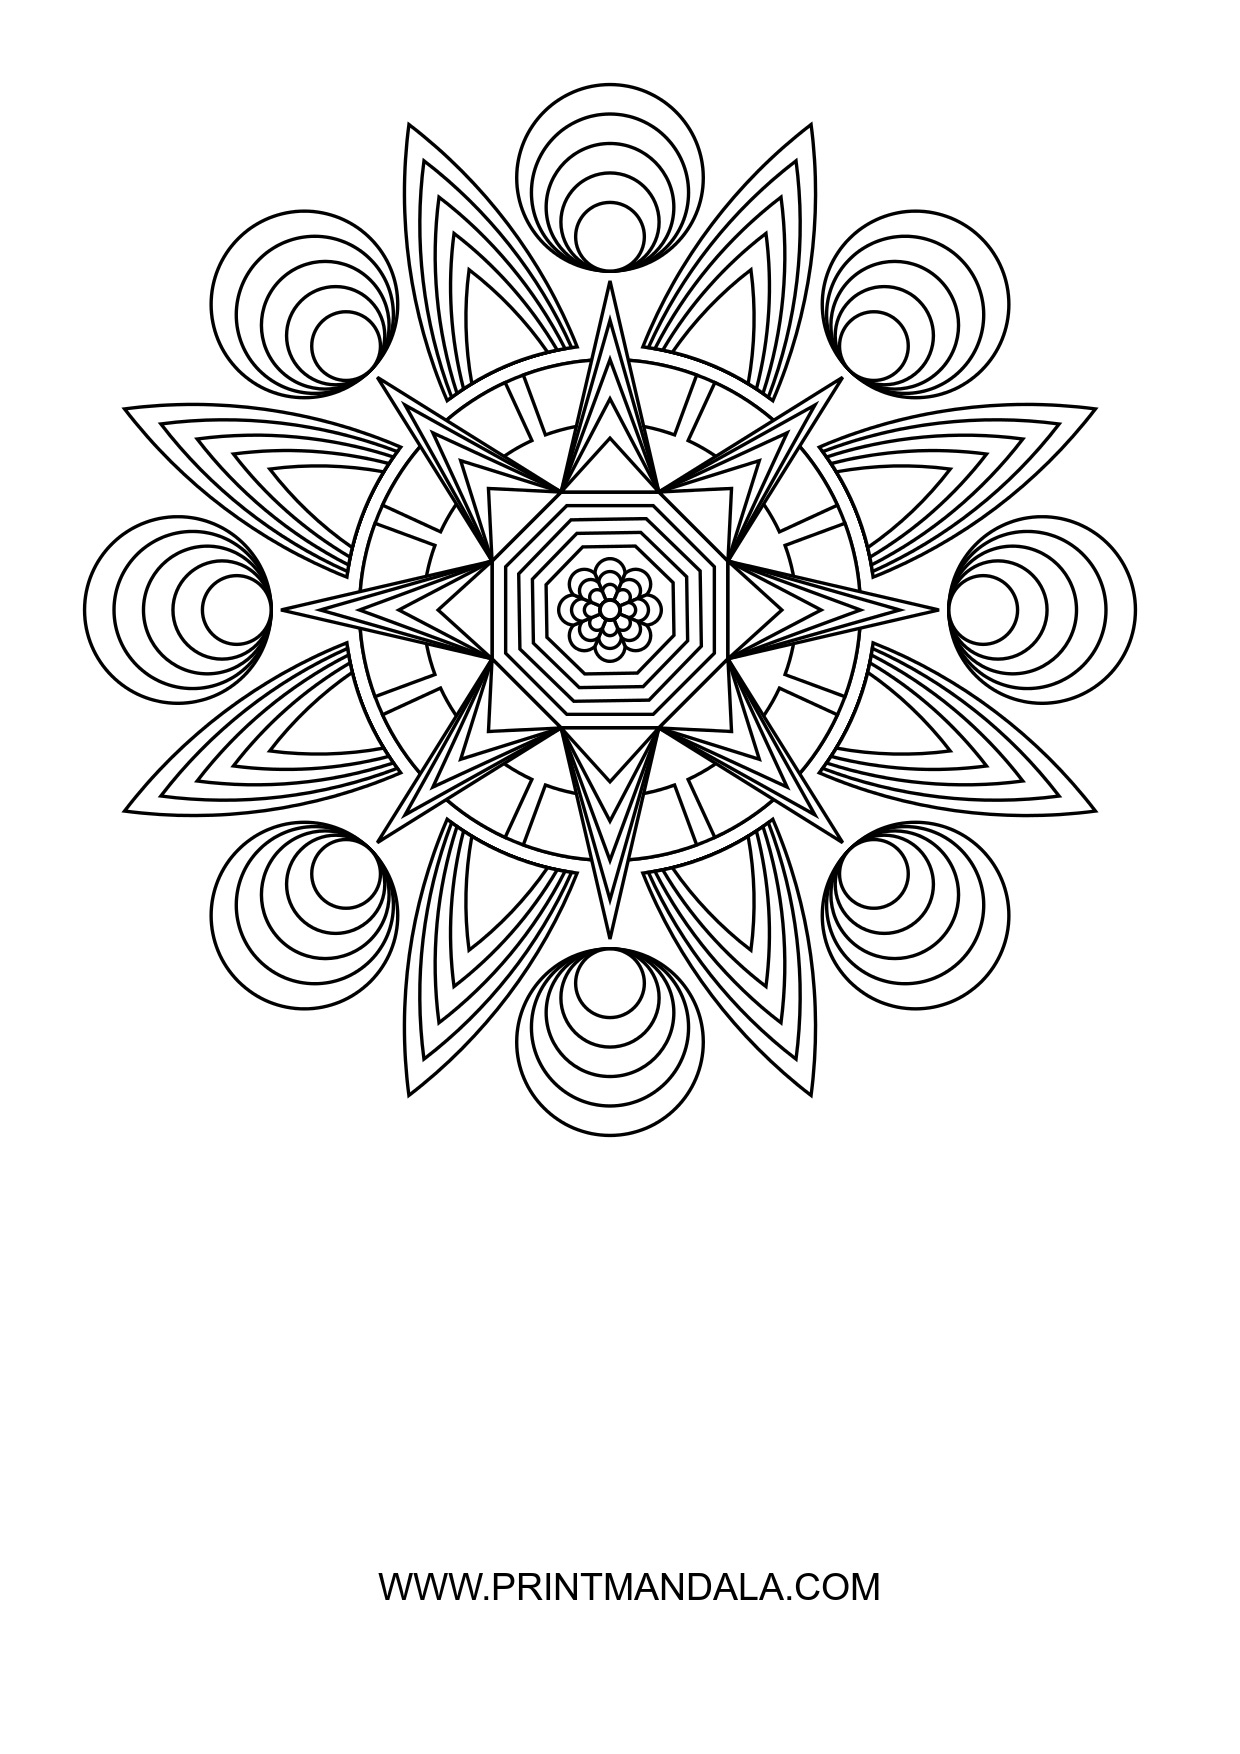 Coloring Pages to Reduce Anxiety — Gianna Russo-Mitma, M.S.